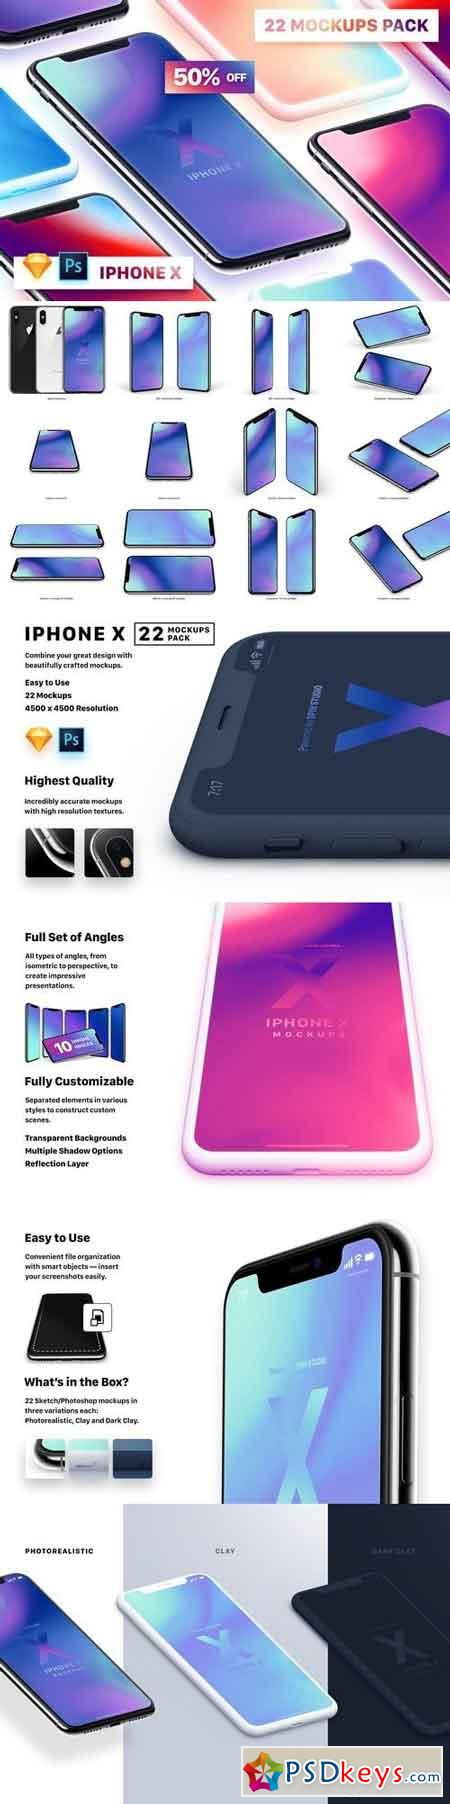 22 iPhone X (PSD, Sketch) Mockups 2108012 » Free Download Photoshop